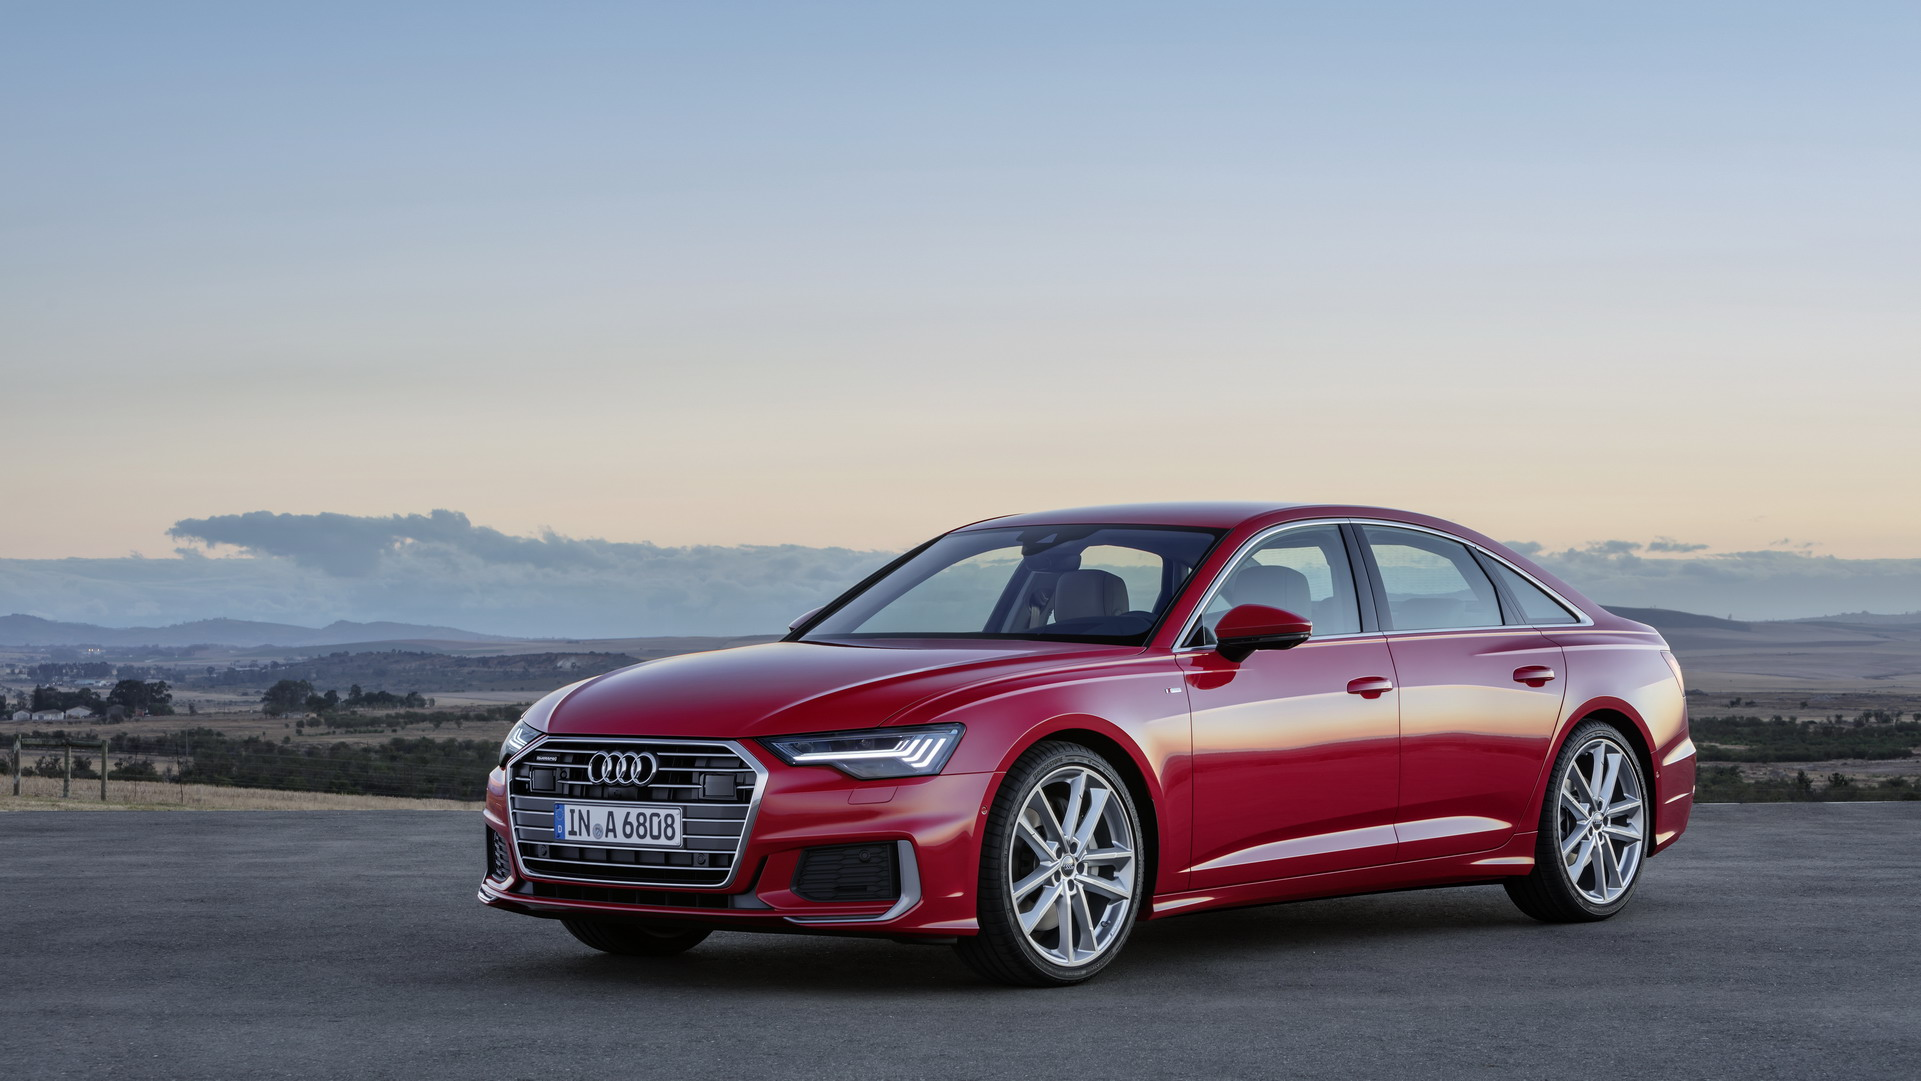 2019 Audi A6 Revealed With Mild Hybrid V6 Engines Quattro Comes